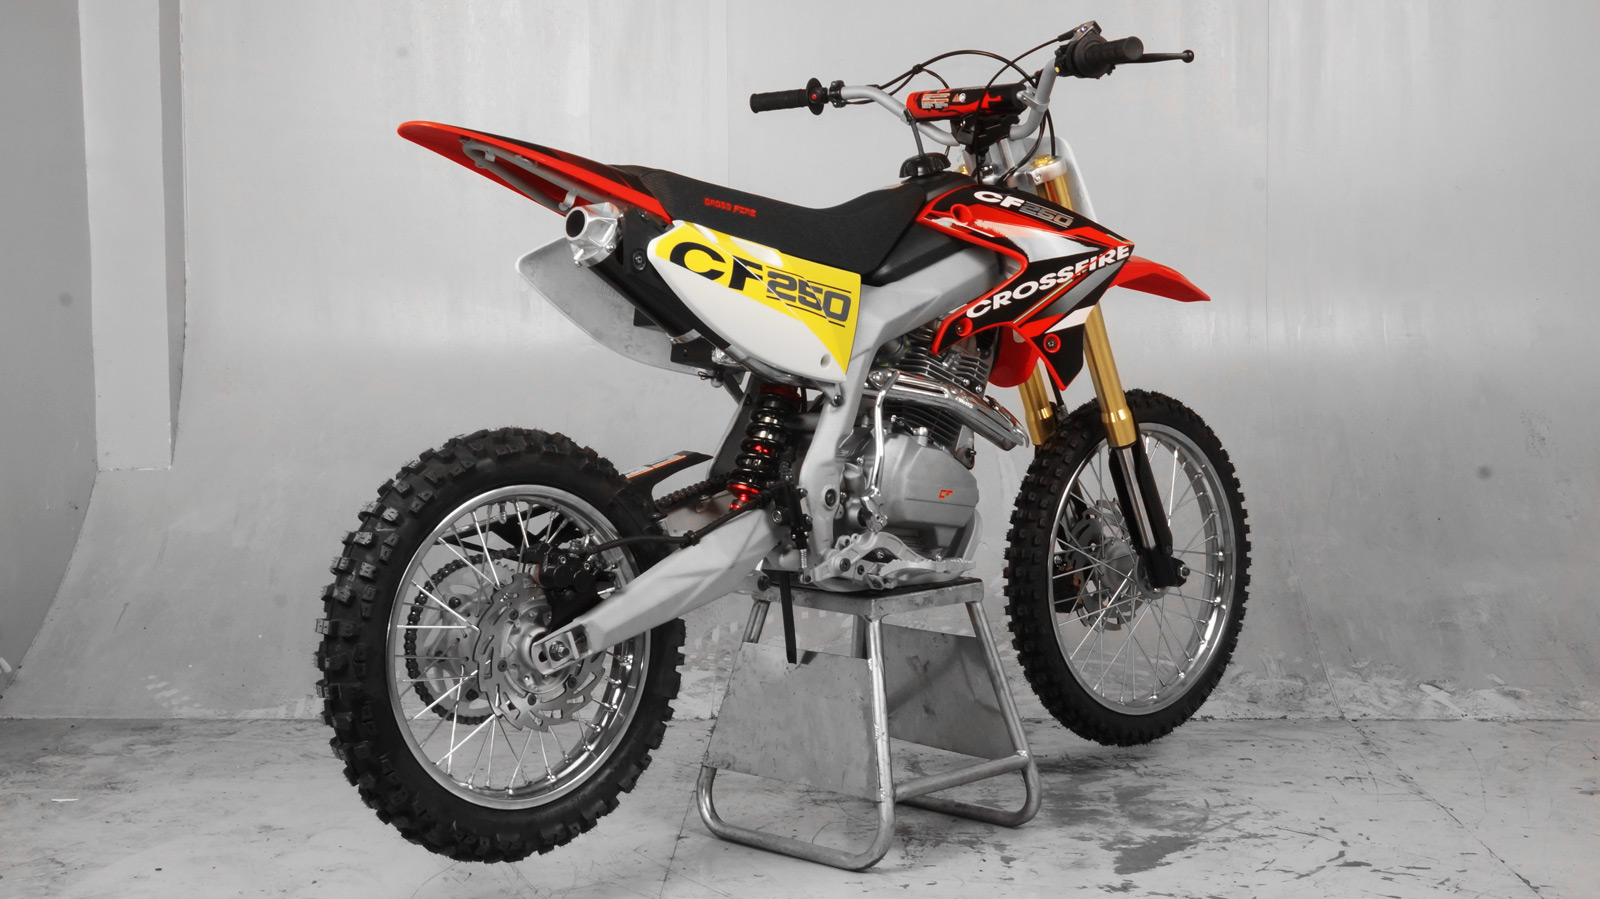 crossfire motorcycles cf250 2500cc dirt bike. Black Bedroom Furniture Sets. Home Design Ideas